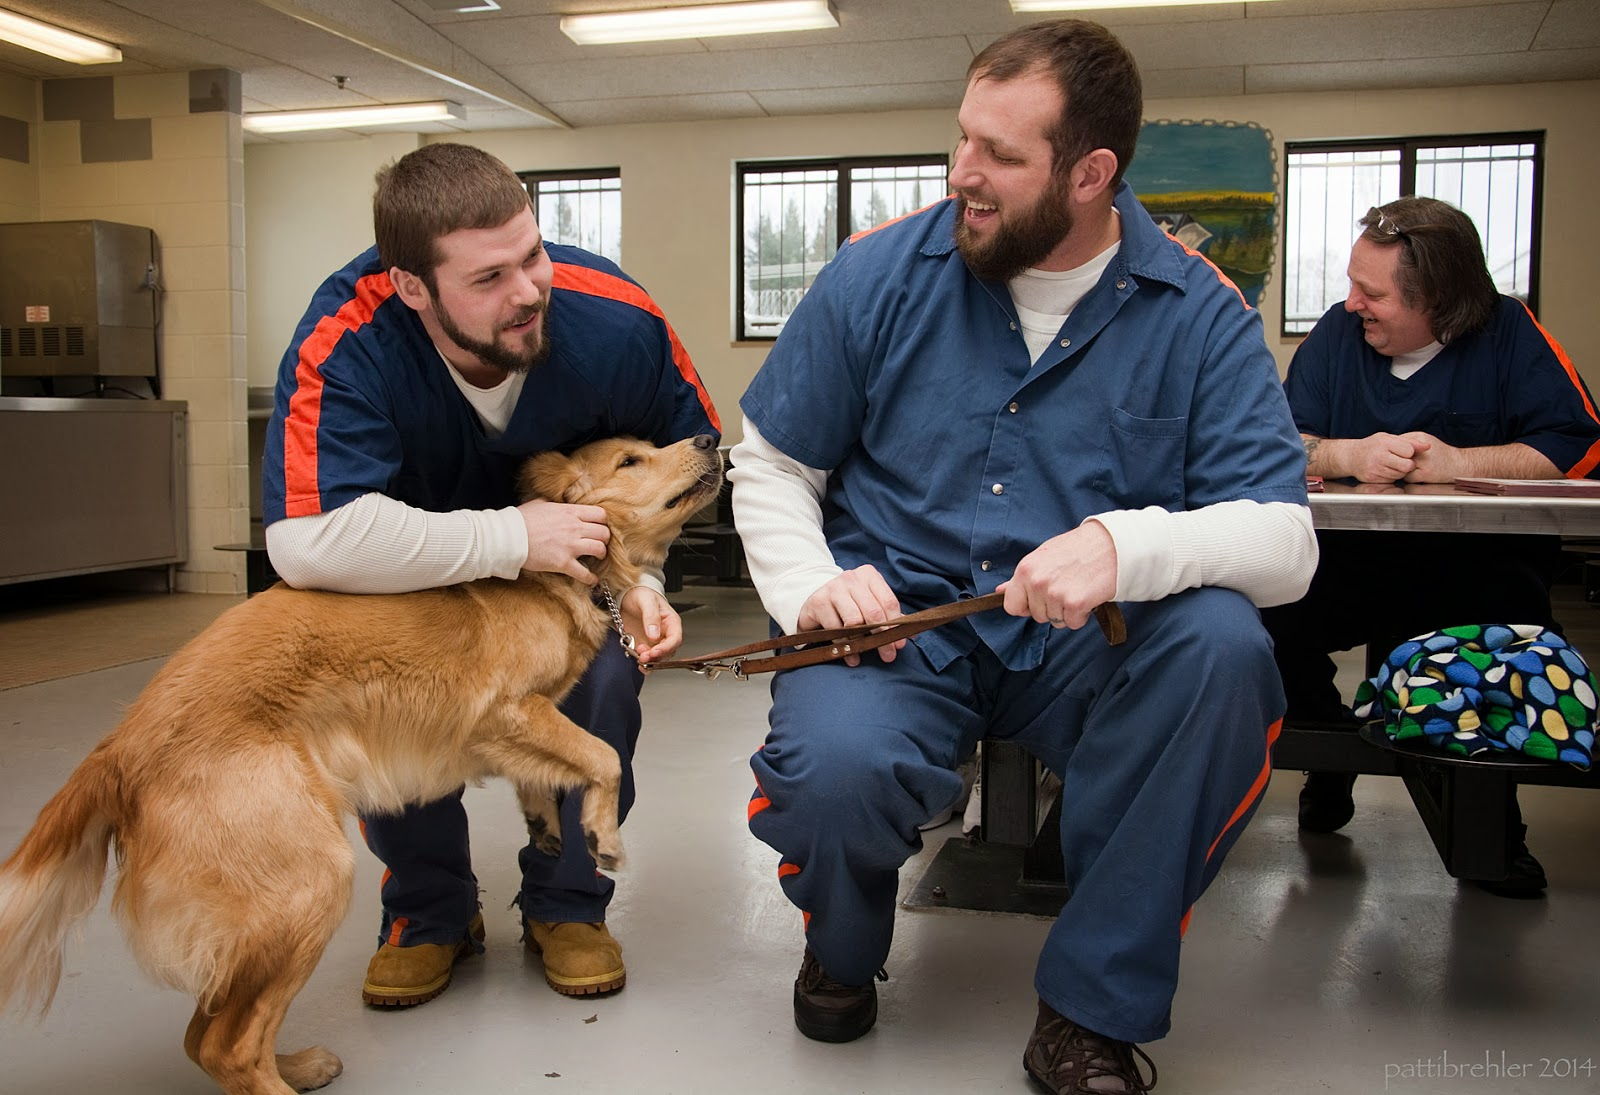 An older golden retriever puppy is being hugged by a young man on the left and his leash is held by a tall  young man sitting down on the right. The men are looking at each other and smilling. They are both wearing blue shirts and pants. The one on the left has oranges stripes on the shoulders. There is a man in the backgroun on the right sitting at a metal table .